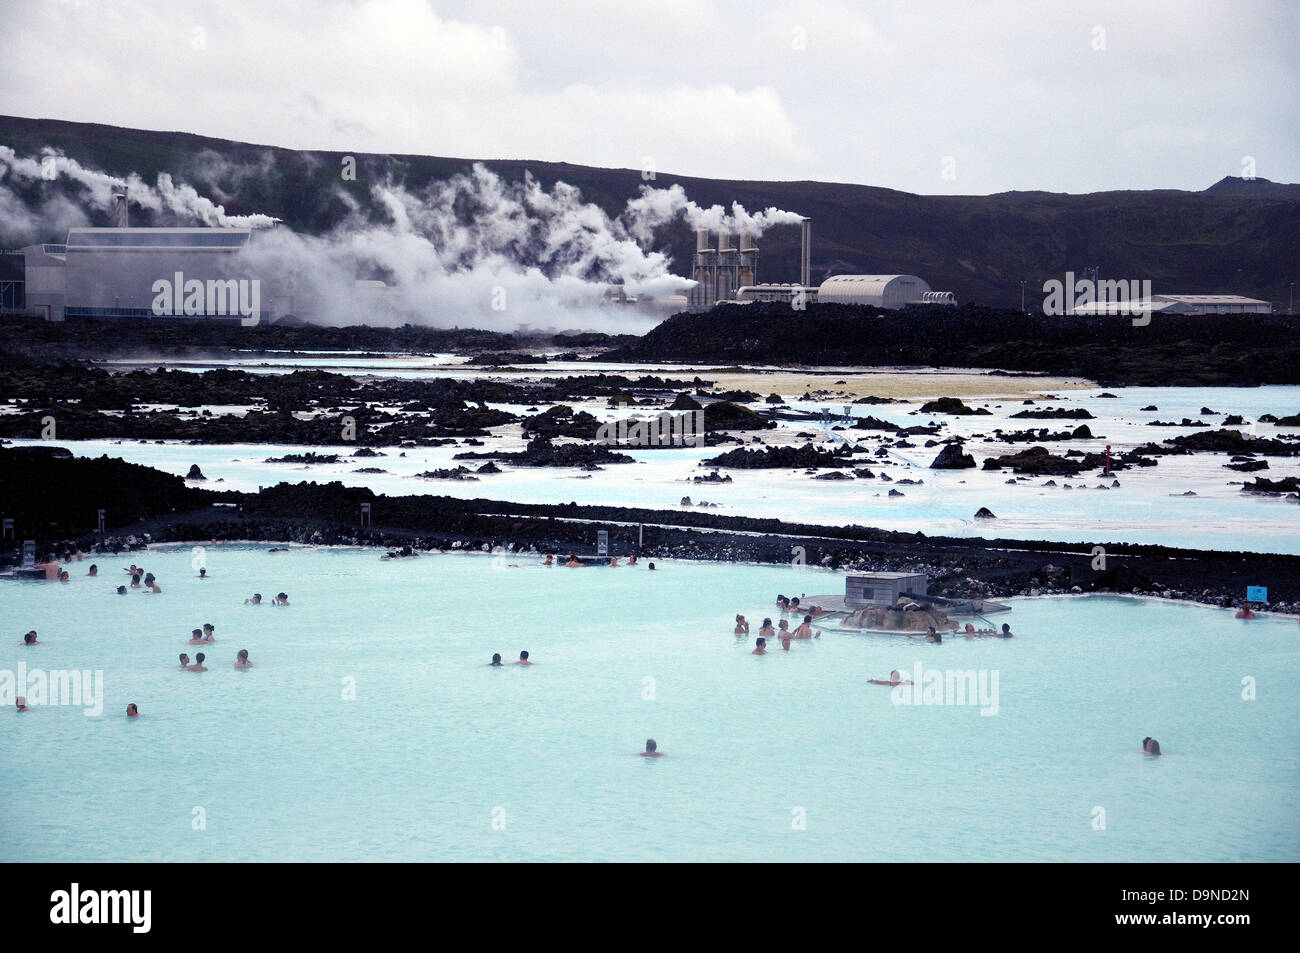 Iceland's famous Blue Lagoon, popular swimming lake in the foreground, the Svartsengi geothermal energy plant - Stock Image